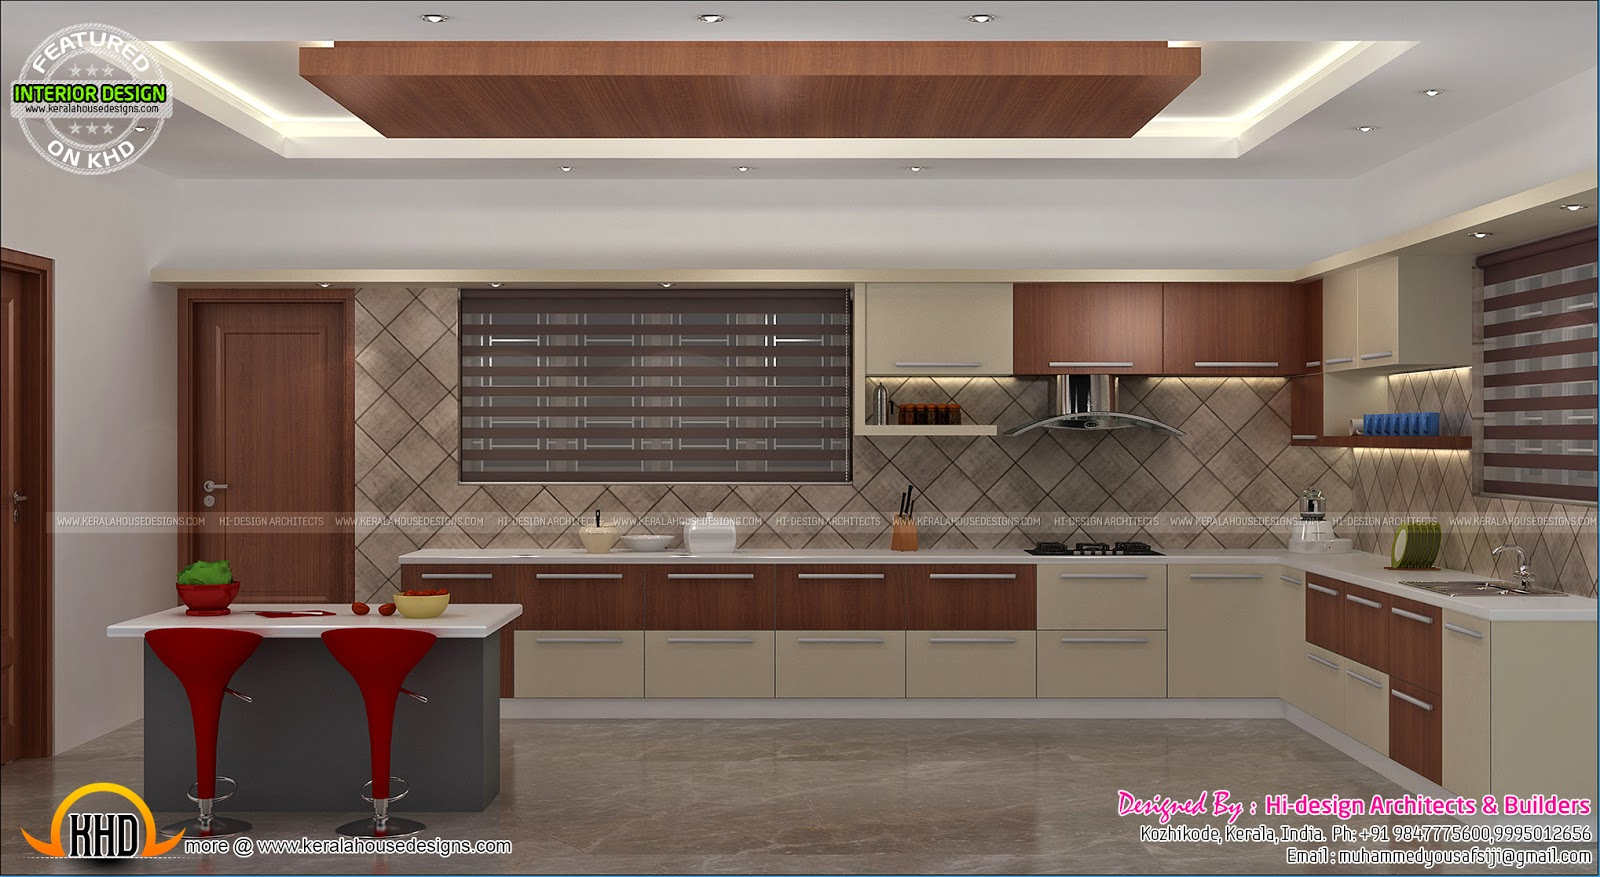 Interior Bed Room Living Dining Kitchen